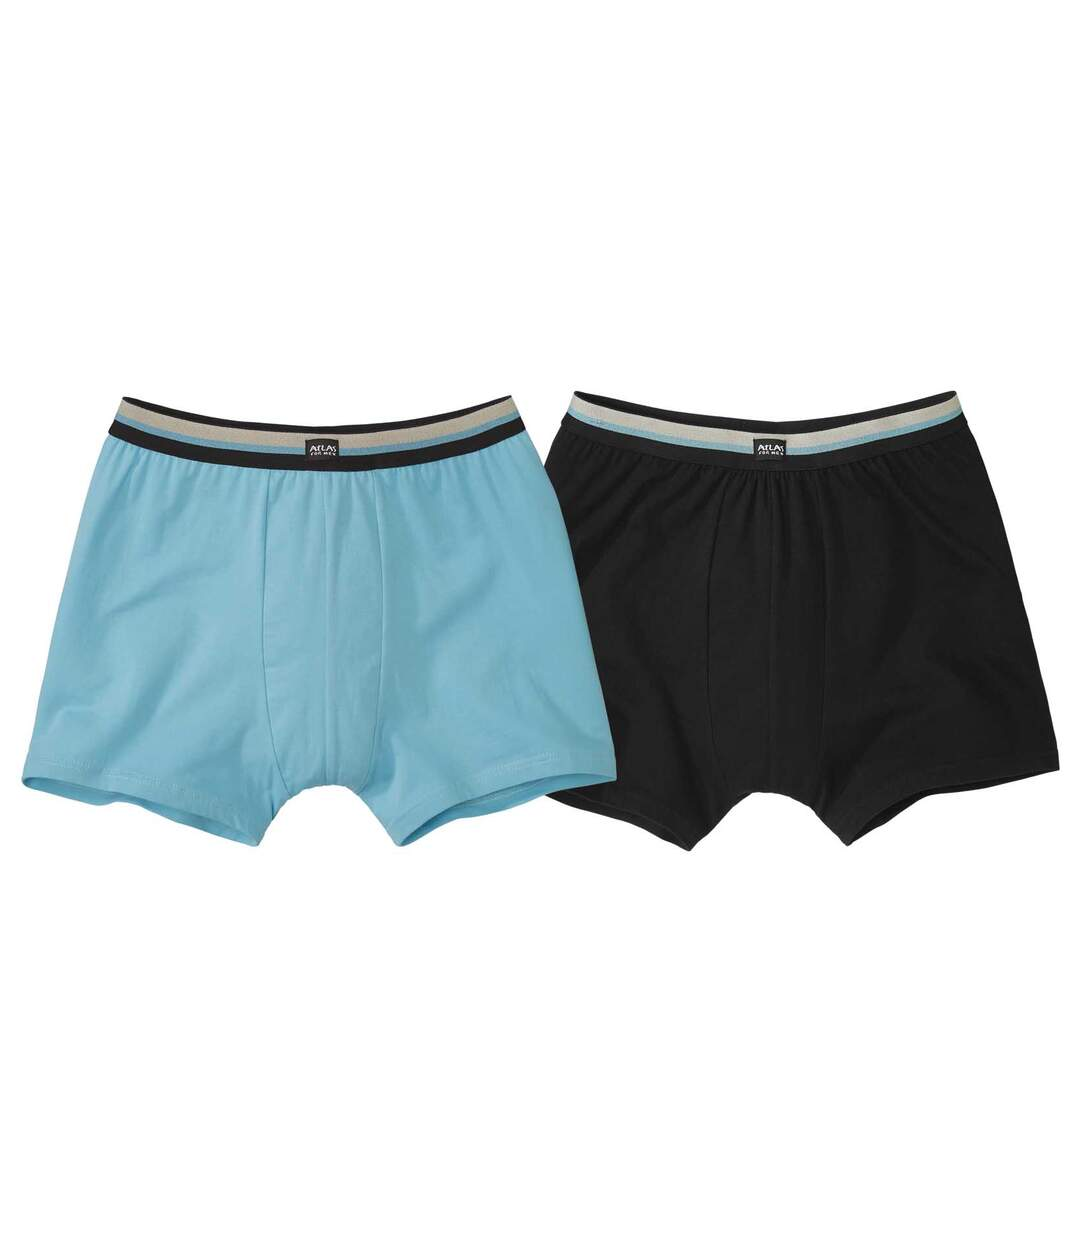 Pack of 2 Stretch Comfort Boxers - Black Turquoise Atlas For Men